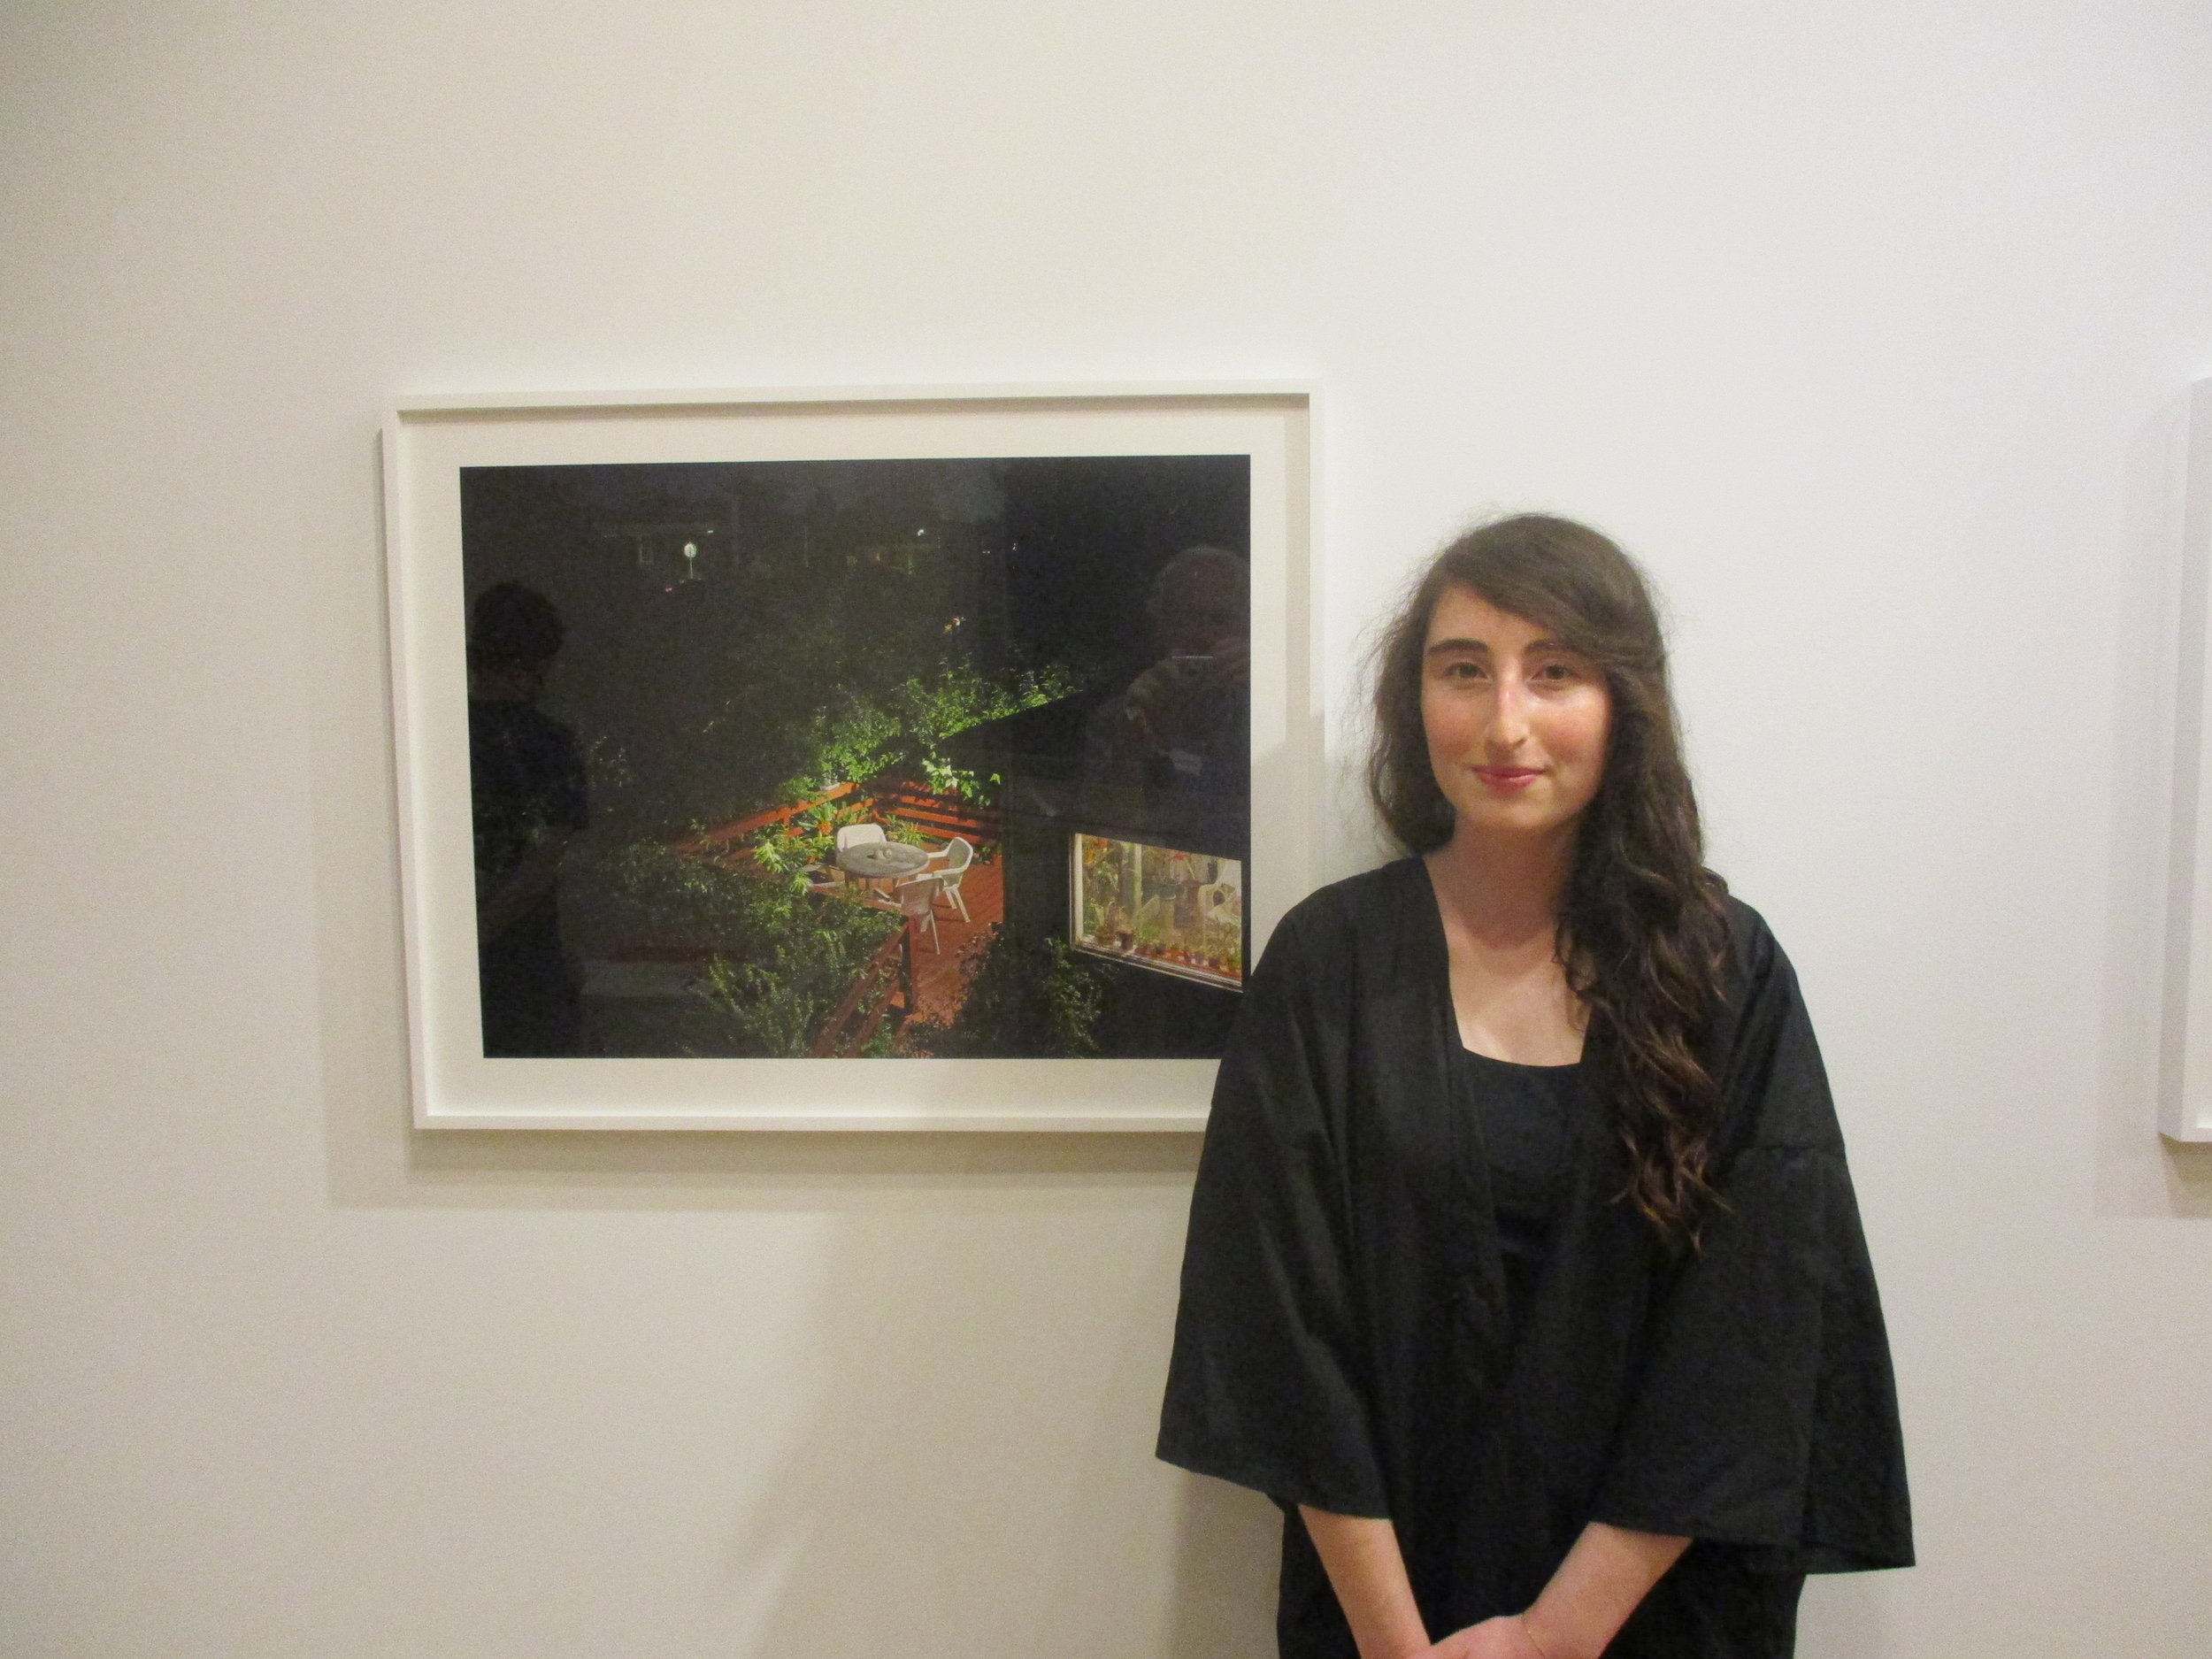 """Sarah Meulhbauer at the opening of the show at Happylucky no. 1 gallery called """"To Find Home."""" The Sarah Lawence graduate is standing next to a photo of her parents house in Queens. Three other artists participated in the show."""